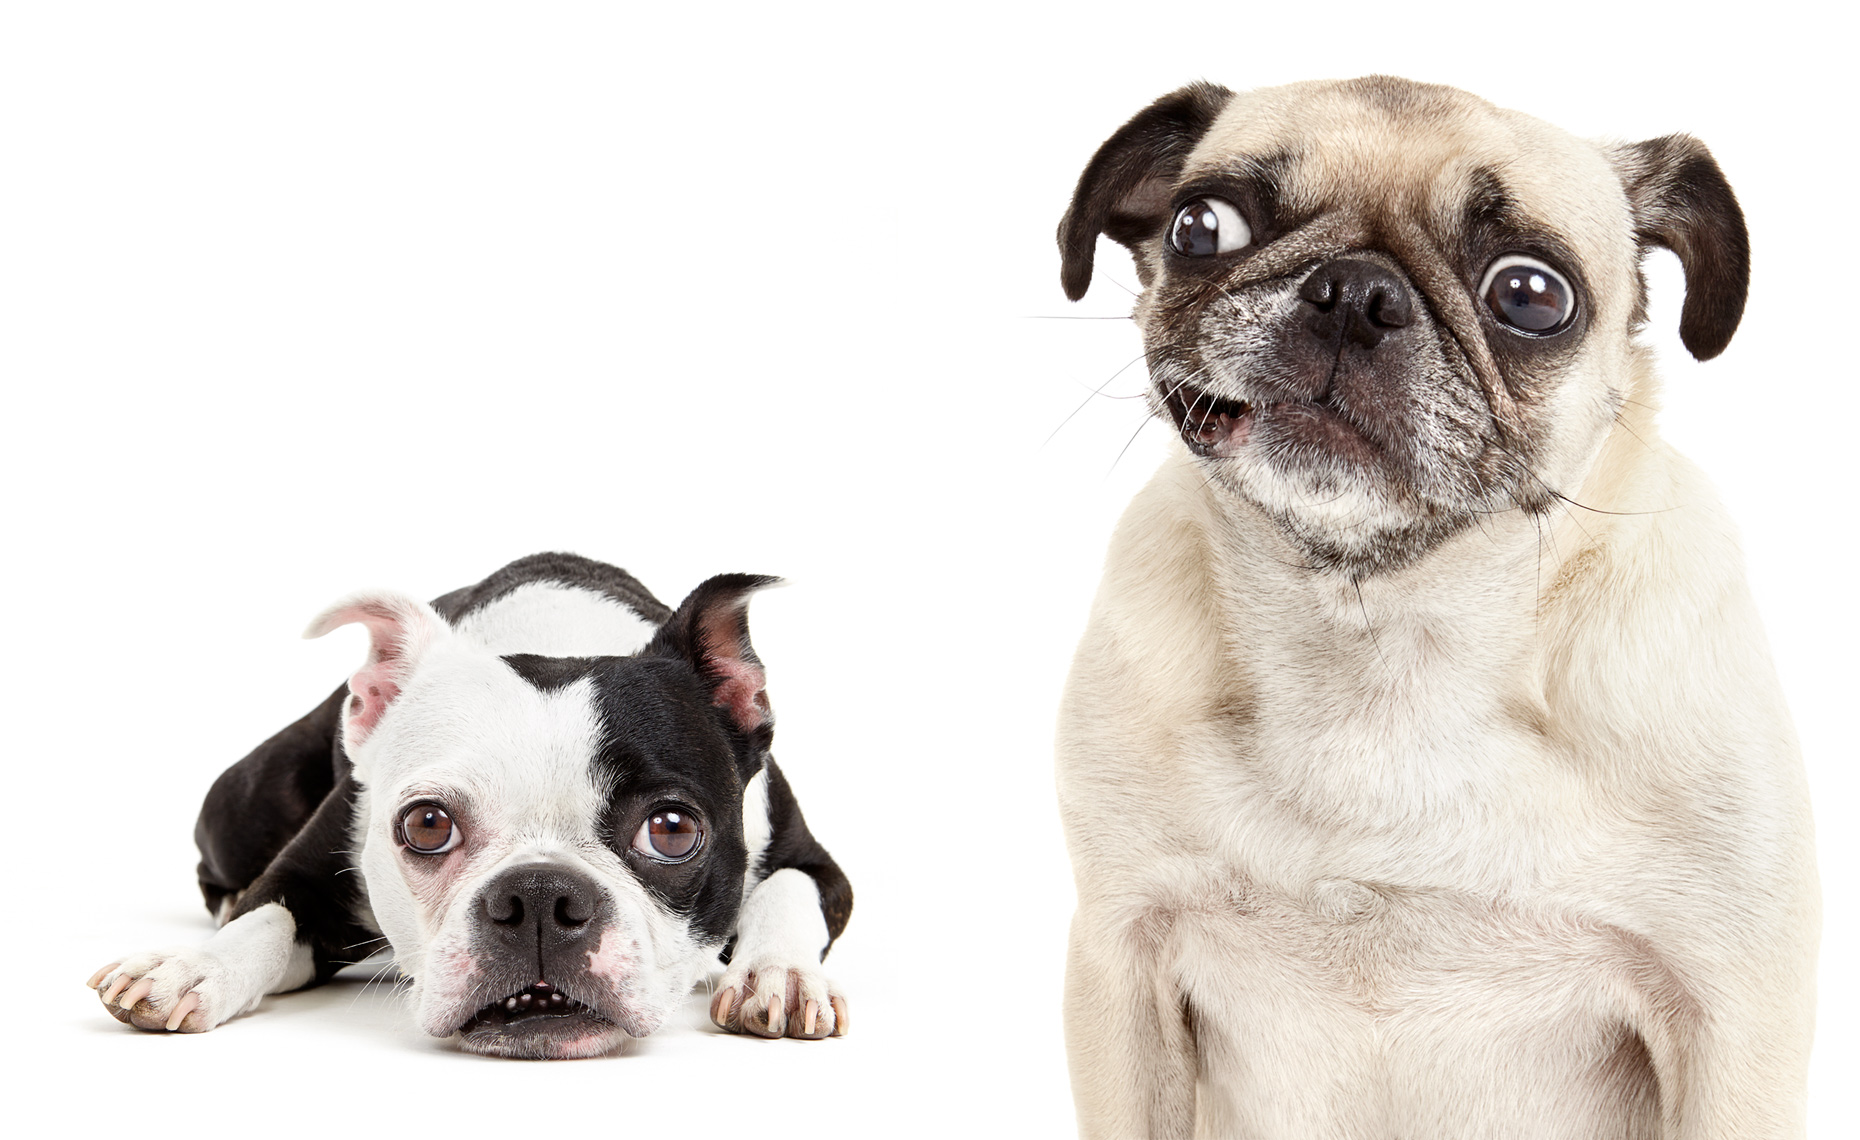 Boston Terrier and Pug expressions